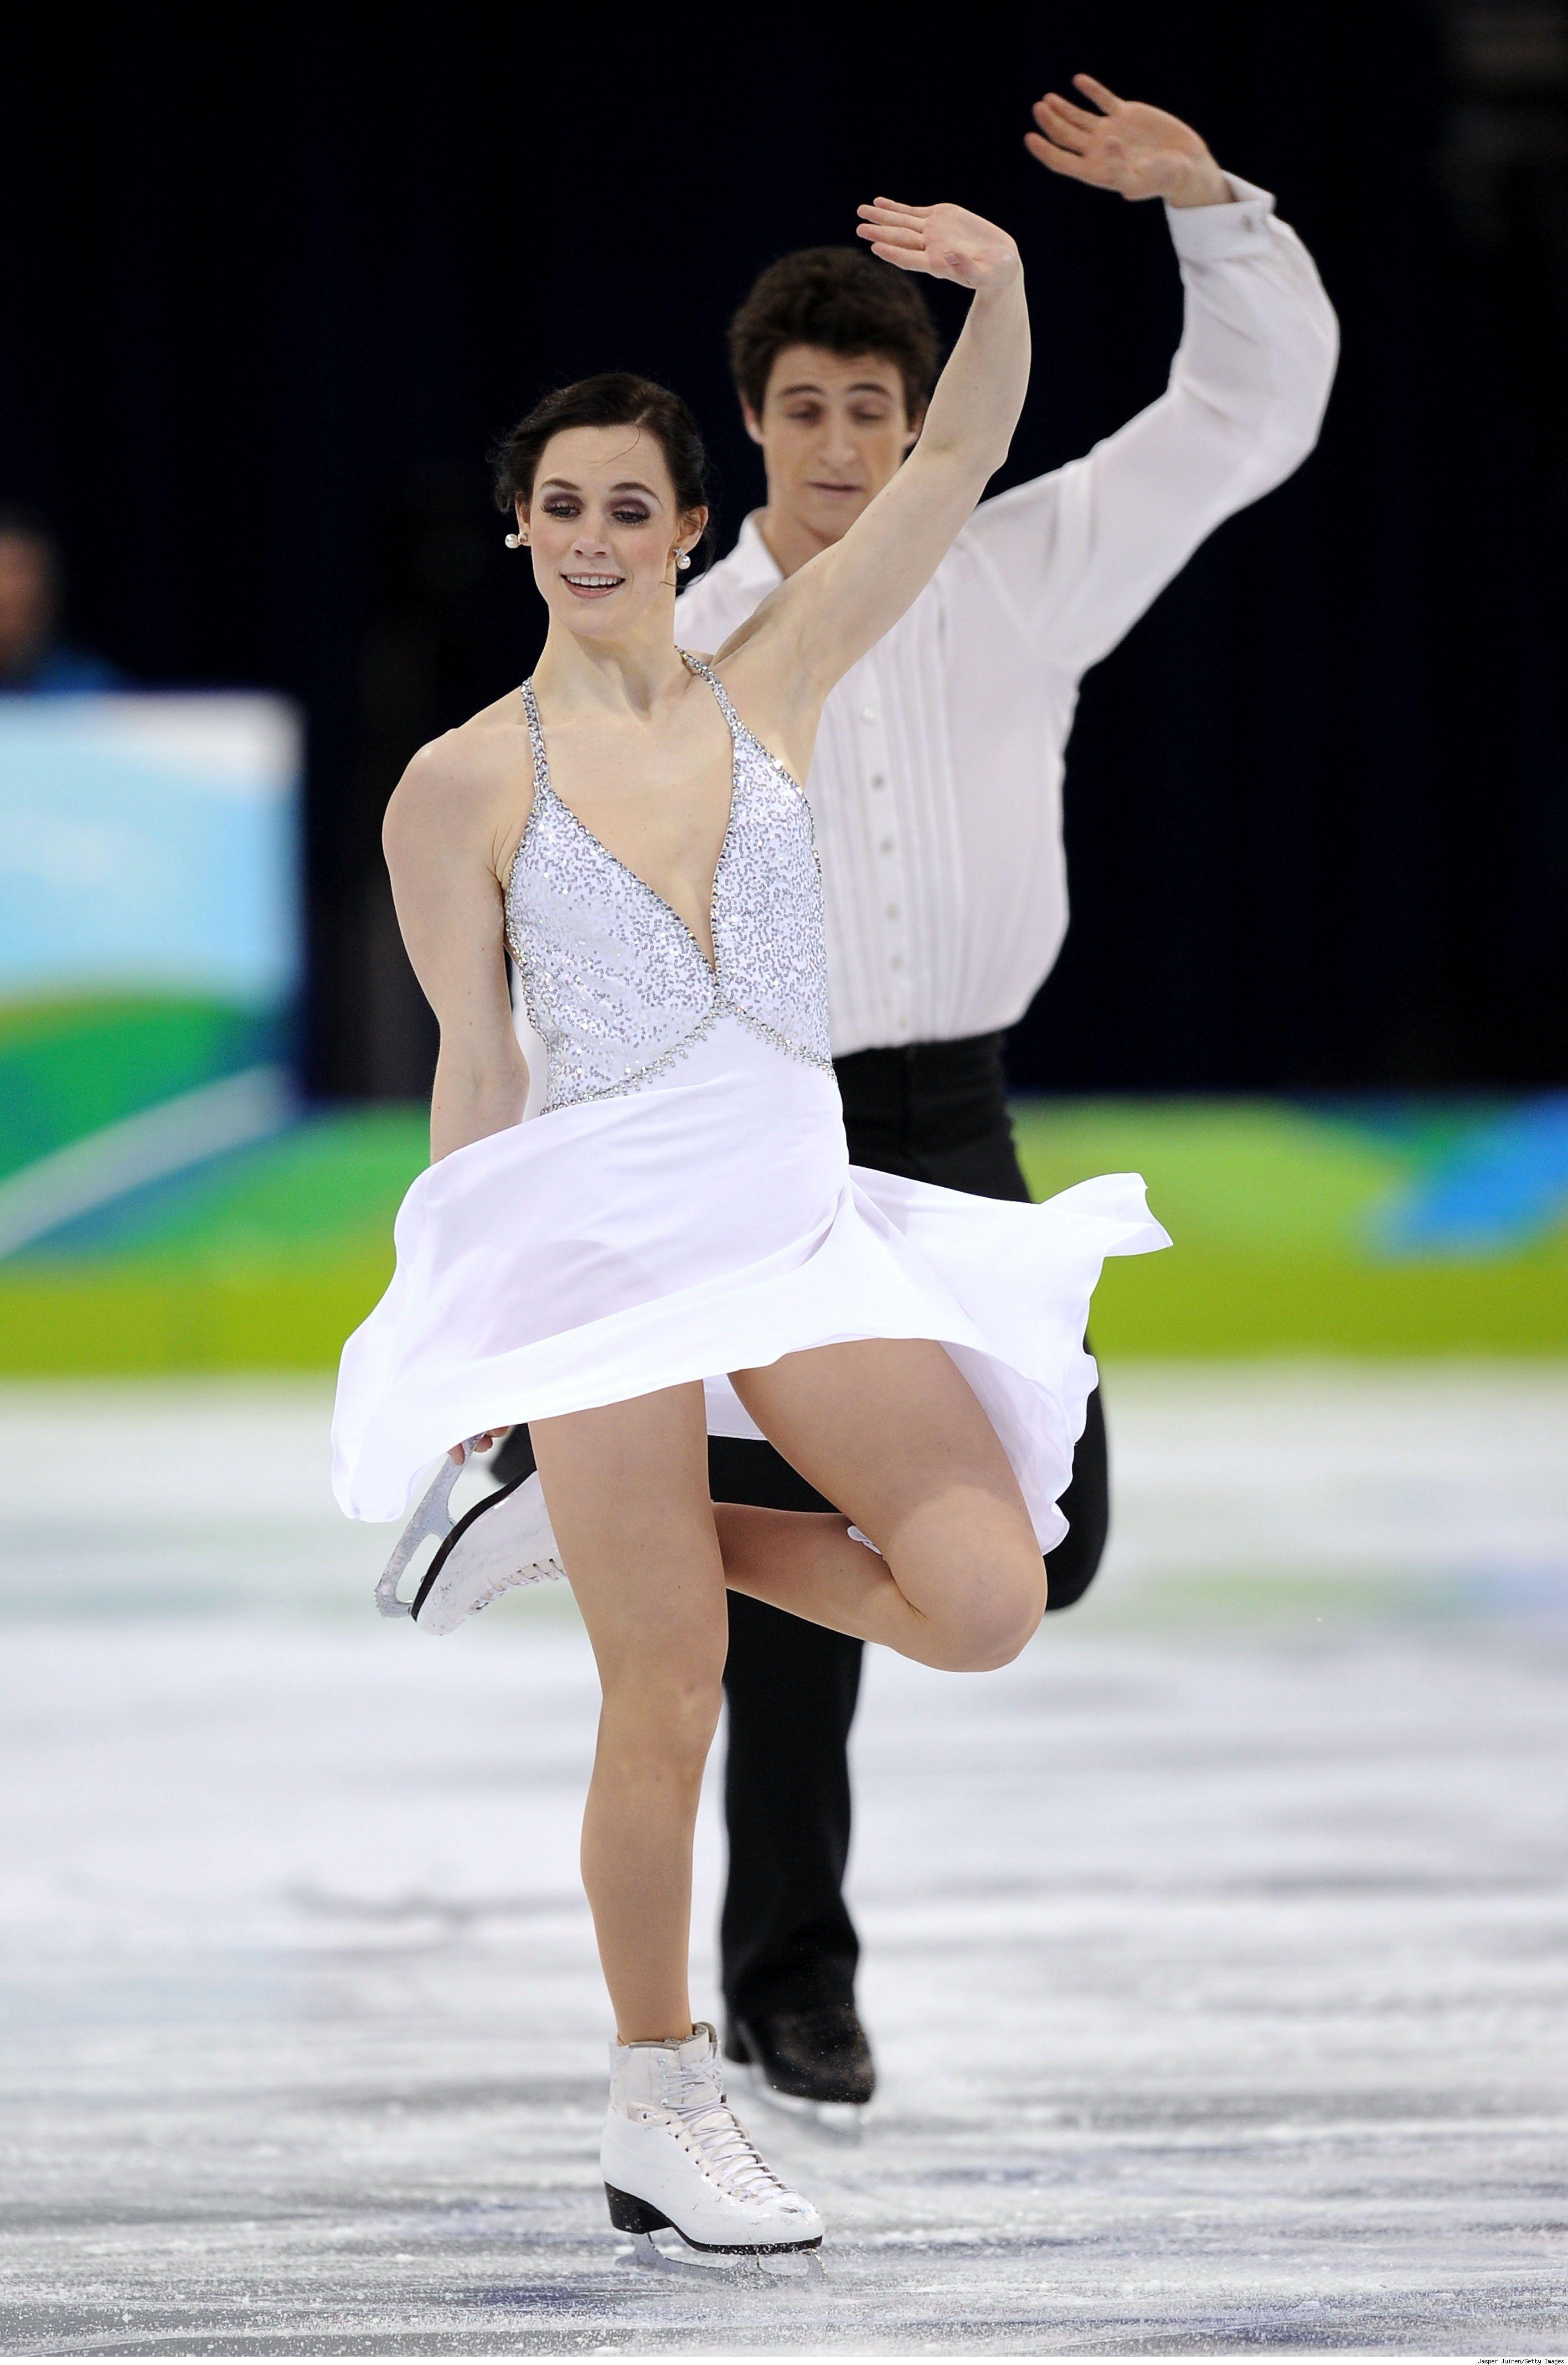 Virtue and Moir 2010 | Olympic gold medalists and their skating ...